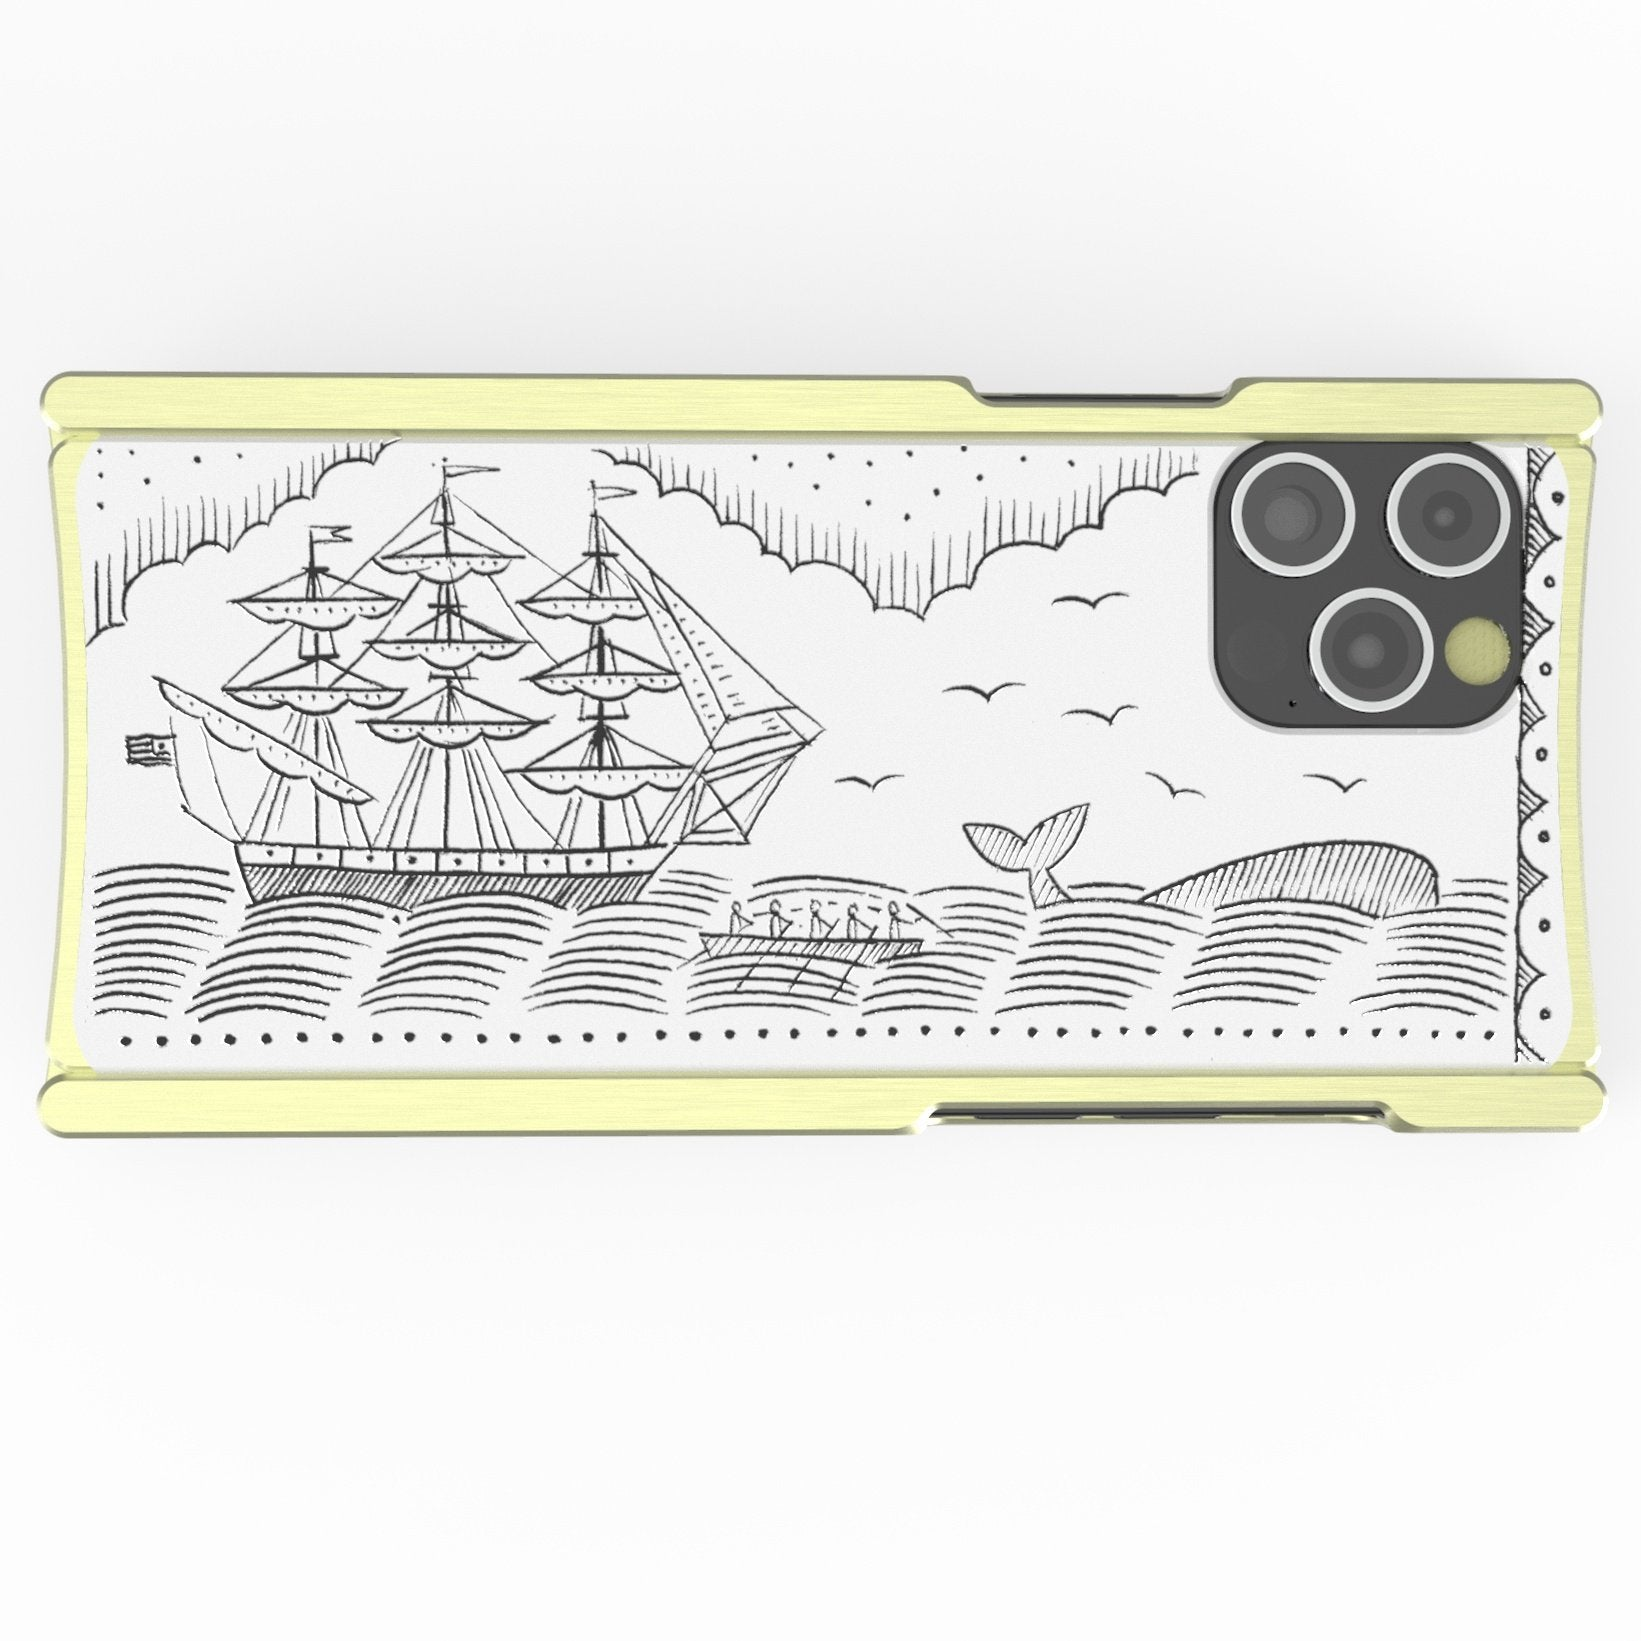 iPhone 12 Case, Duke Riley, Whale and Ship, Artist Edition Europa 12 Pro Brass and White G10